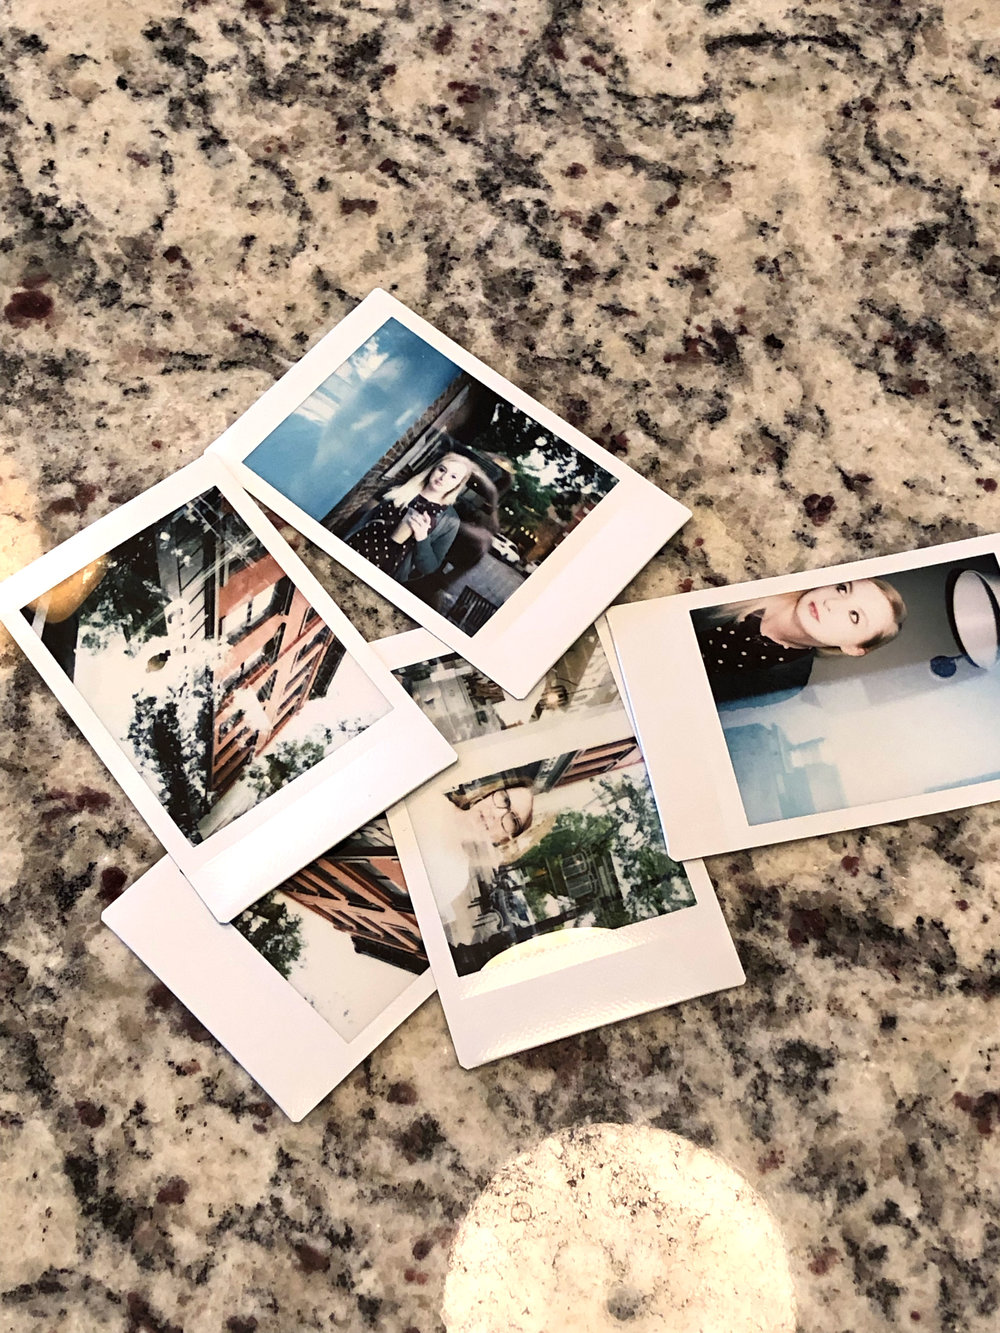 Instax from this weekend I haven't scanned yet